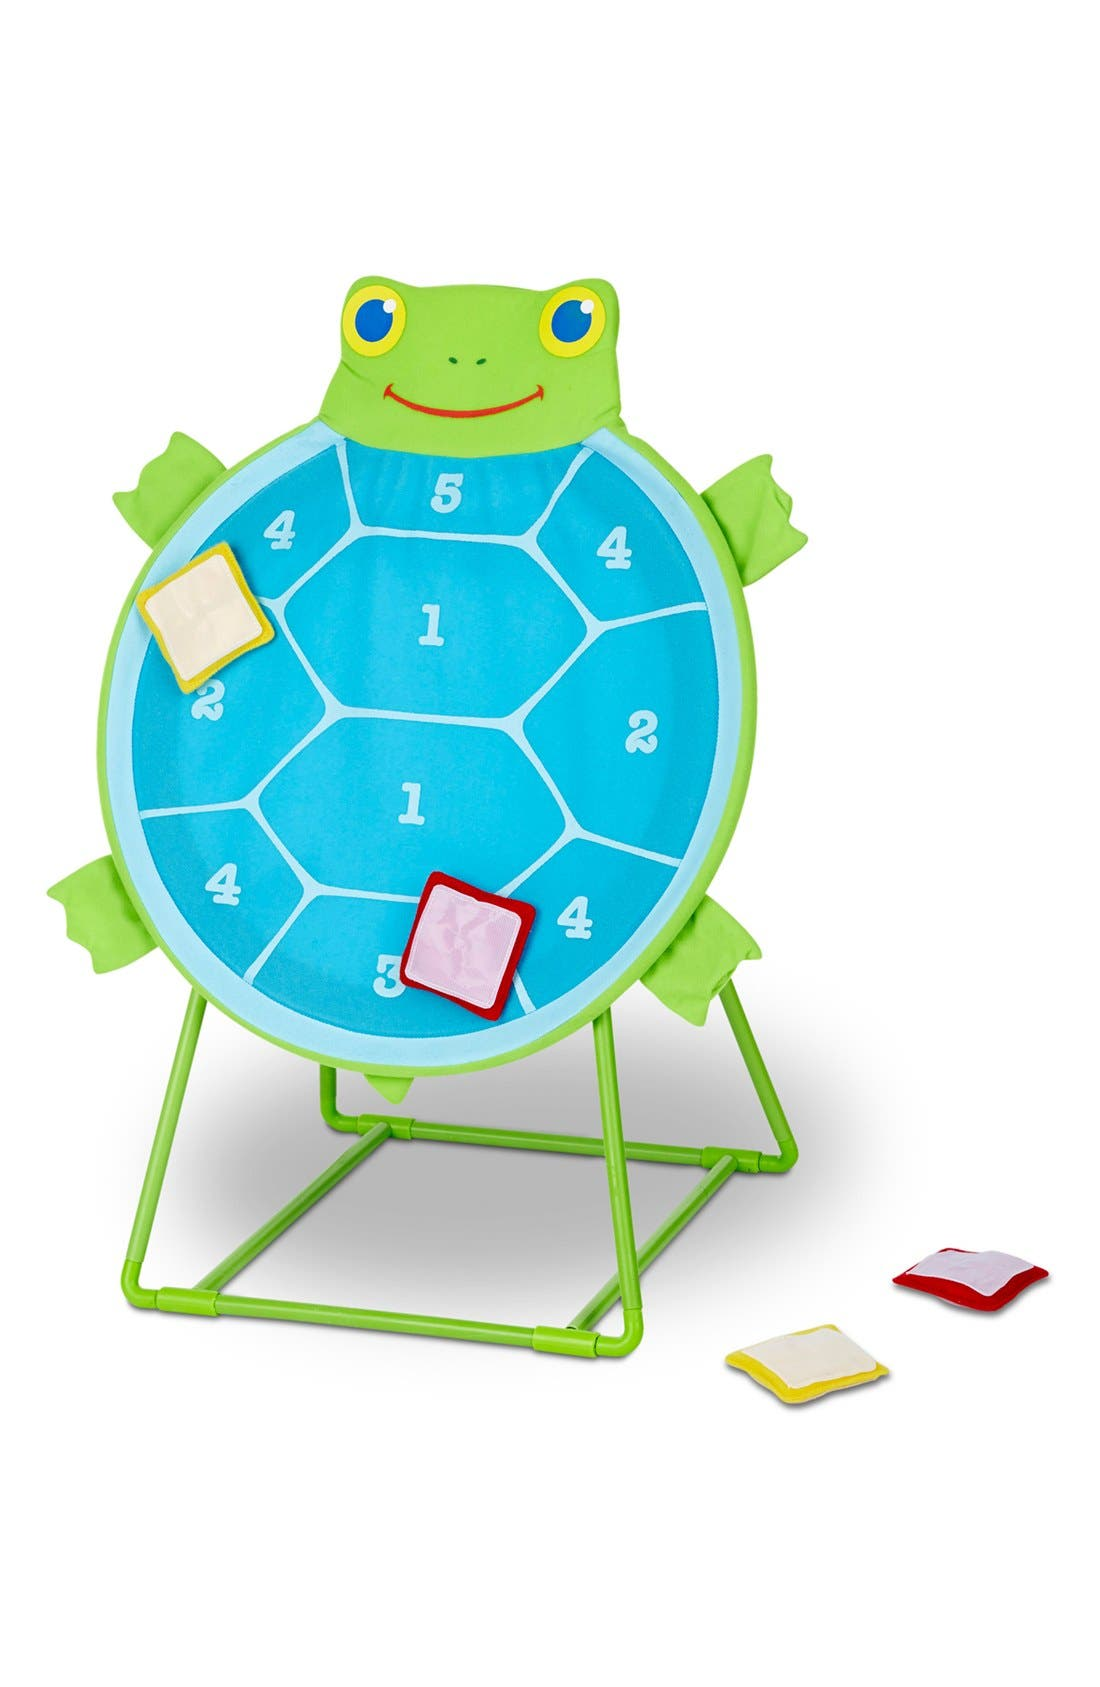 'Tootle Turtle' Target Game,                             Alternate thumbnail 4, color,                             300